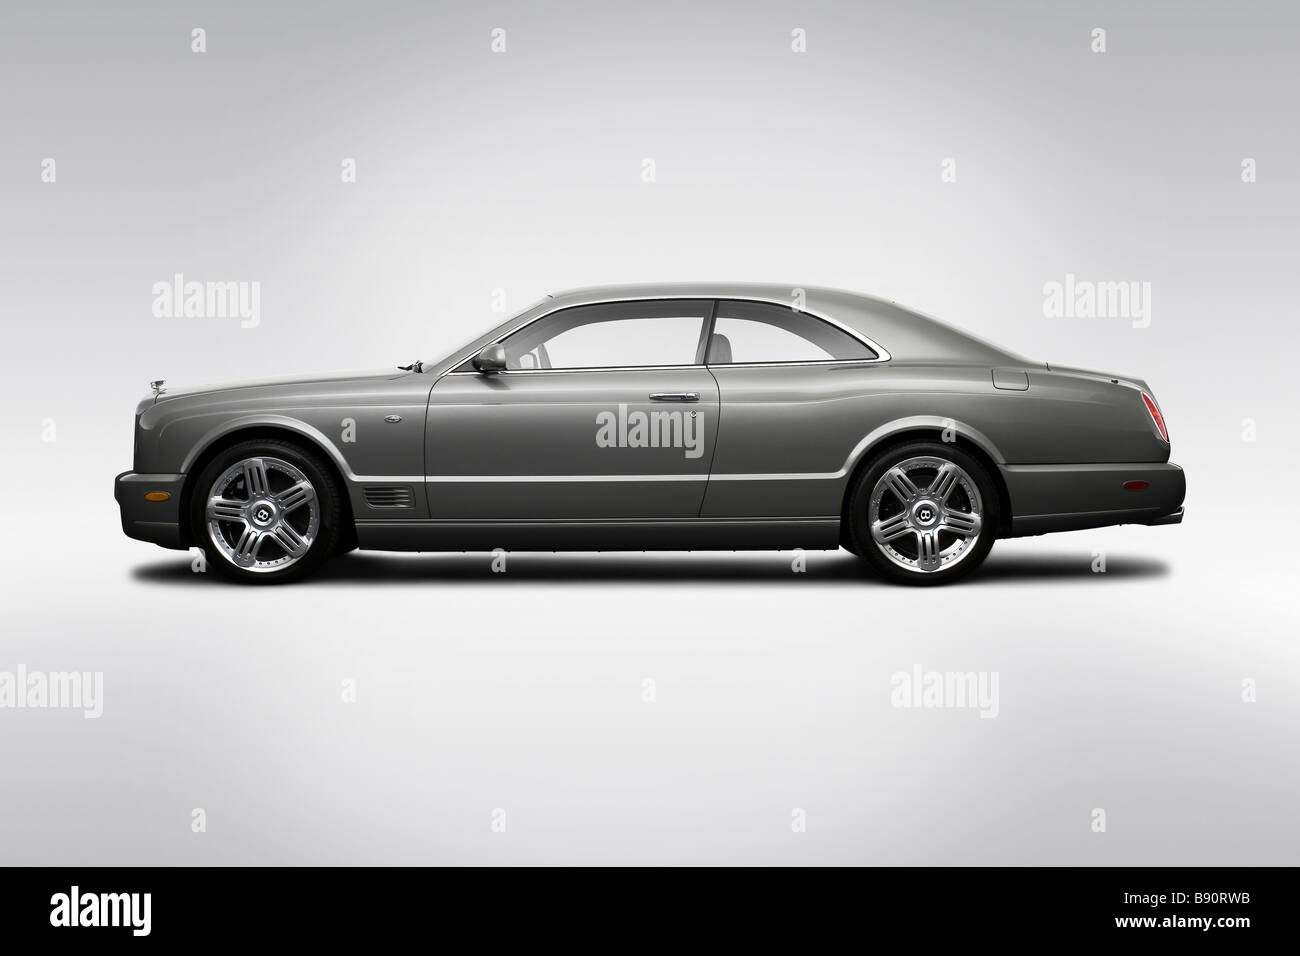 2009 Bentley Brooklands in Gray - Drivers Side Profile - Stock Image